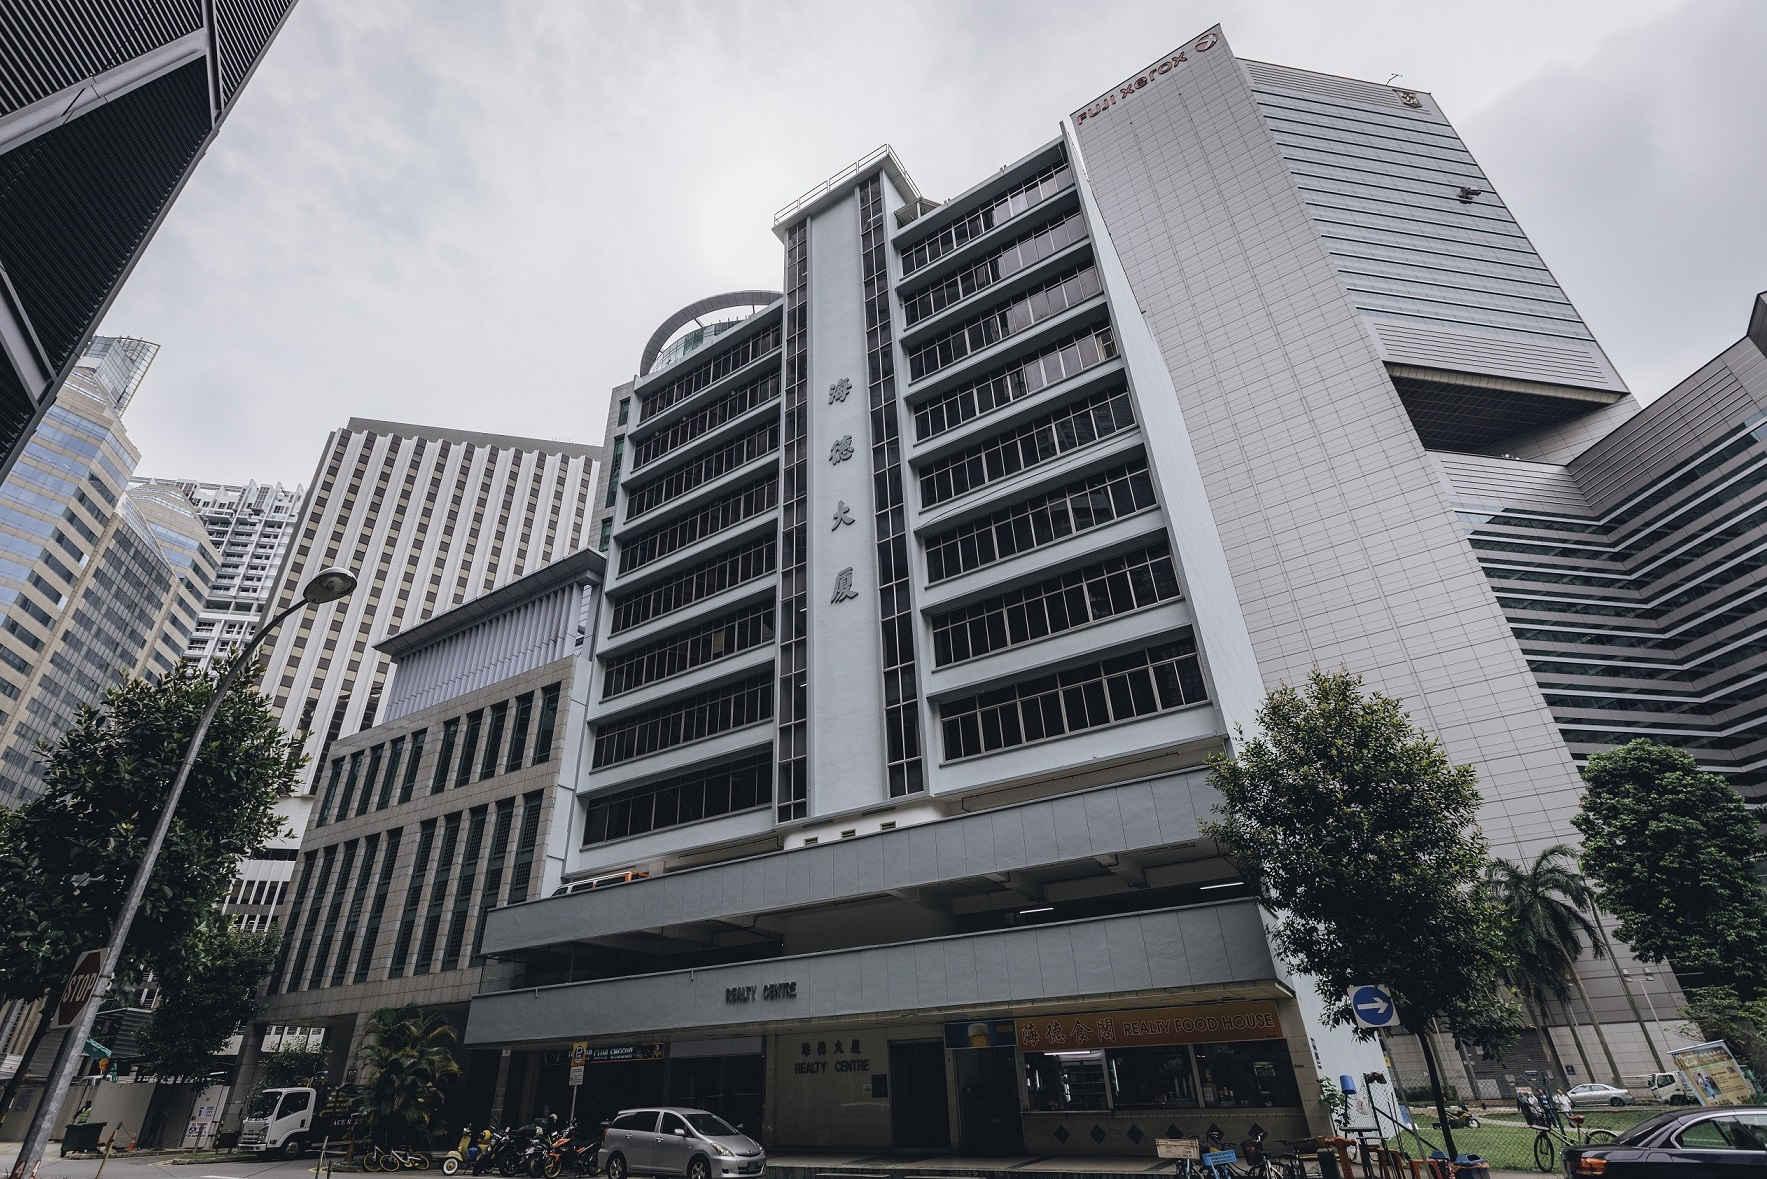 GLS BERNAM STREET - The GLS site on Bernam Street is located next to Realty Centre which was sold en bloc for $148 million in April this year (Photo: Cushman & Wakefield) - EDGEPROP SINGAPORE